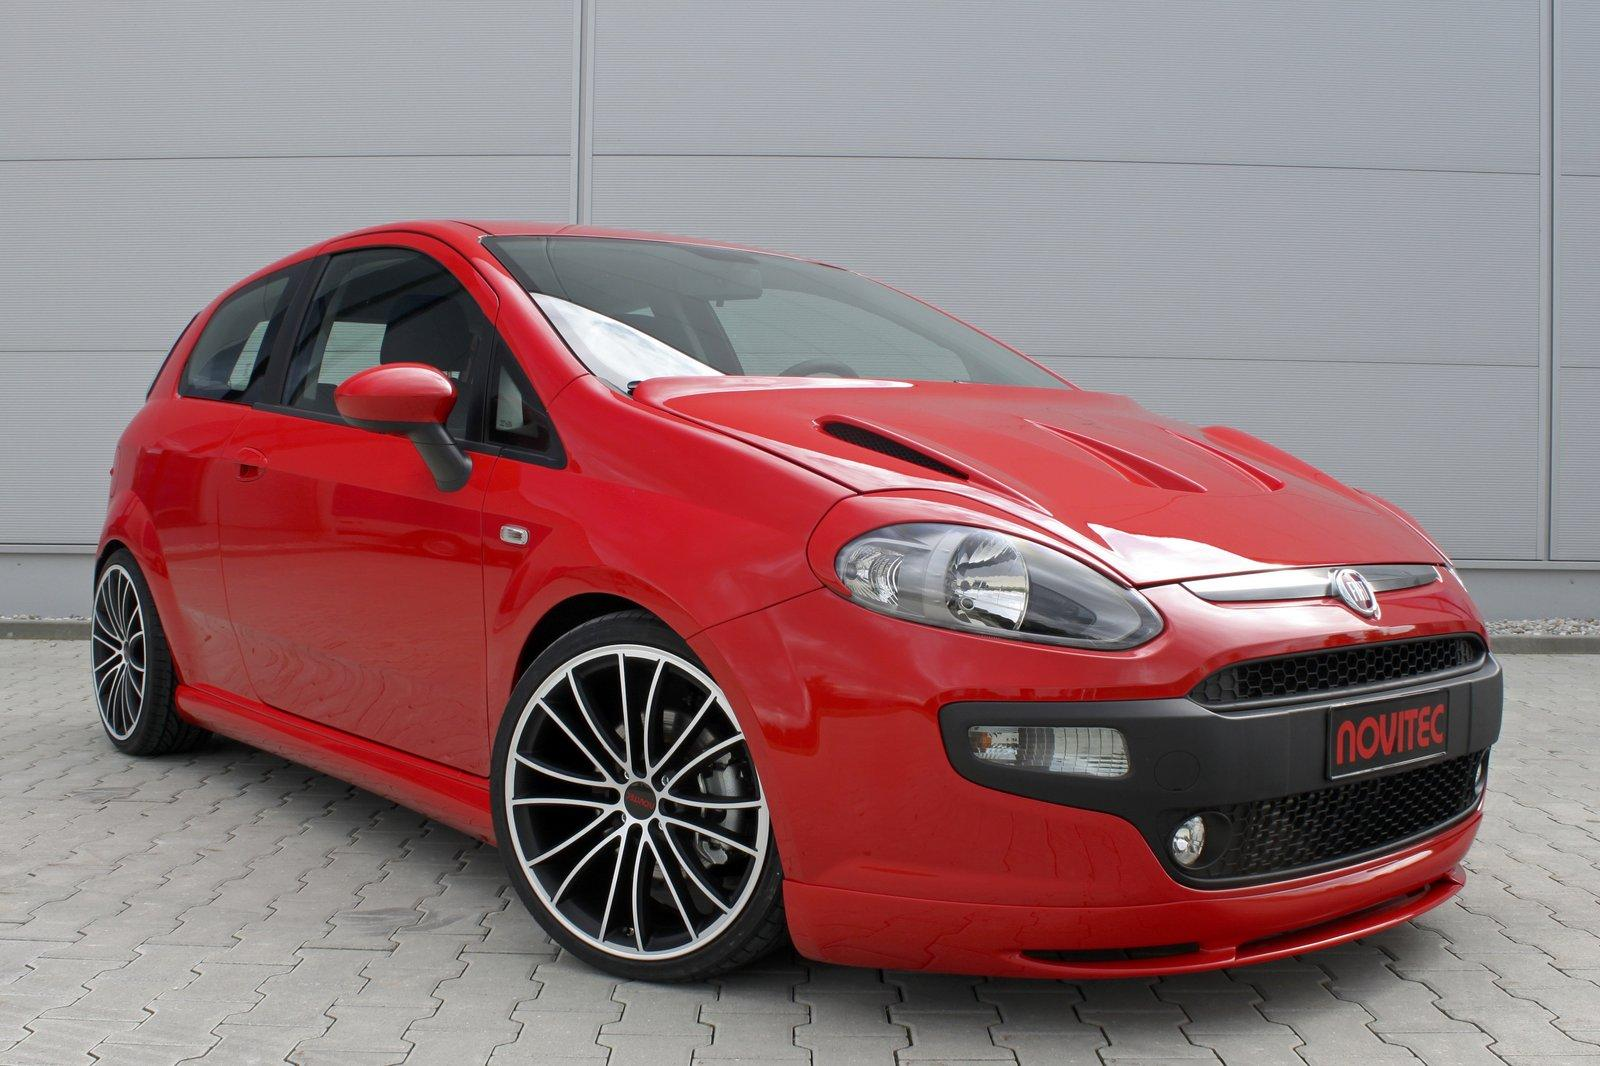 fiat punto 2007 review amazing pictures and images look at the car. Black Bedroom Furniture Sets. Home Design Ideas